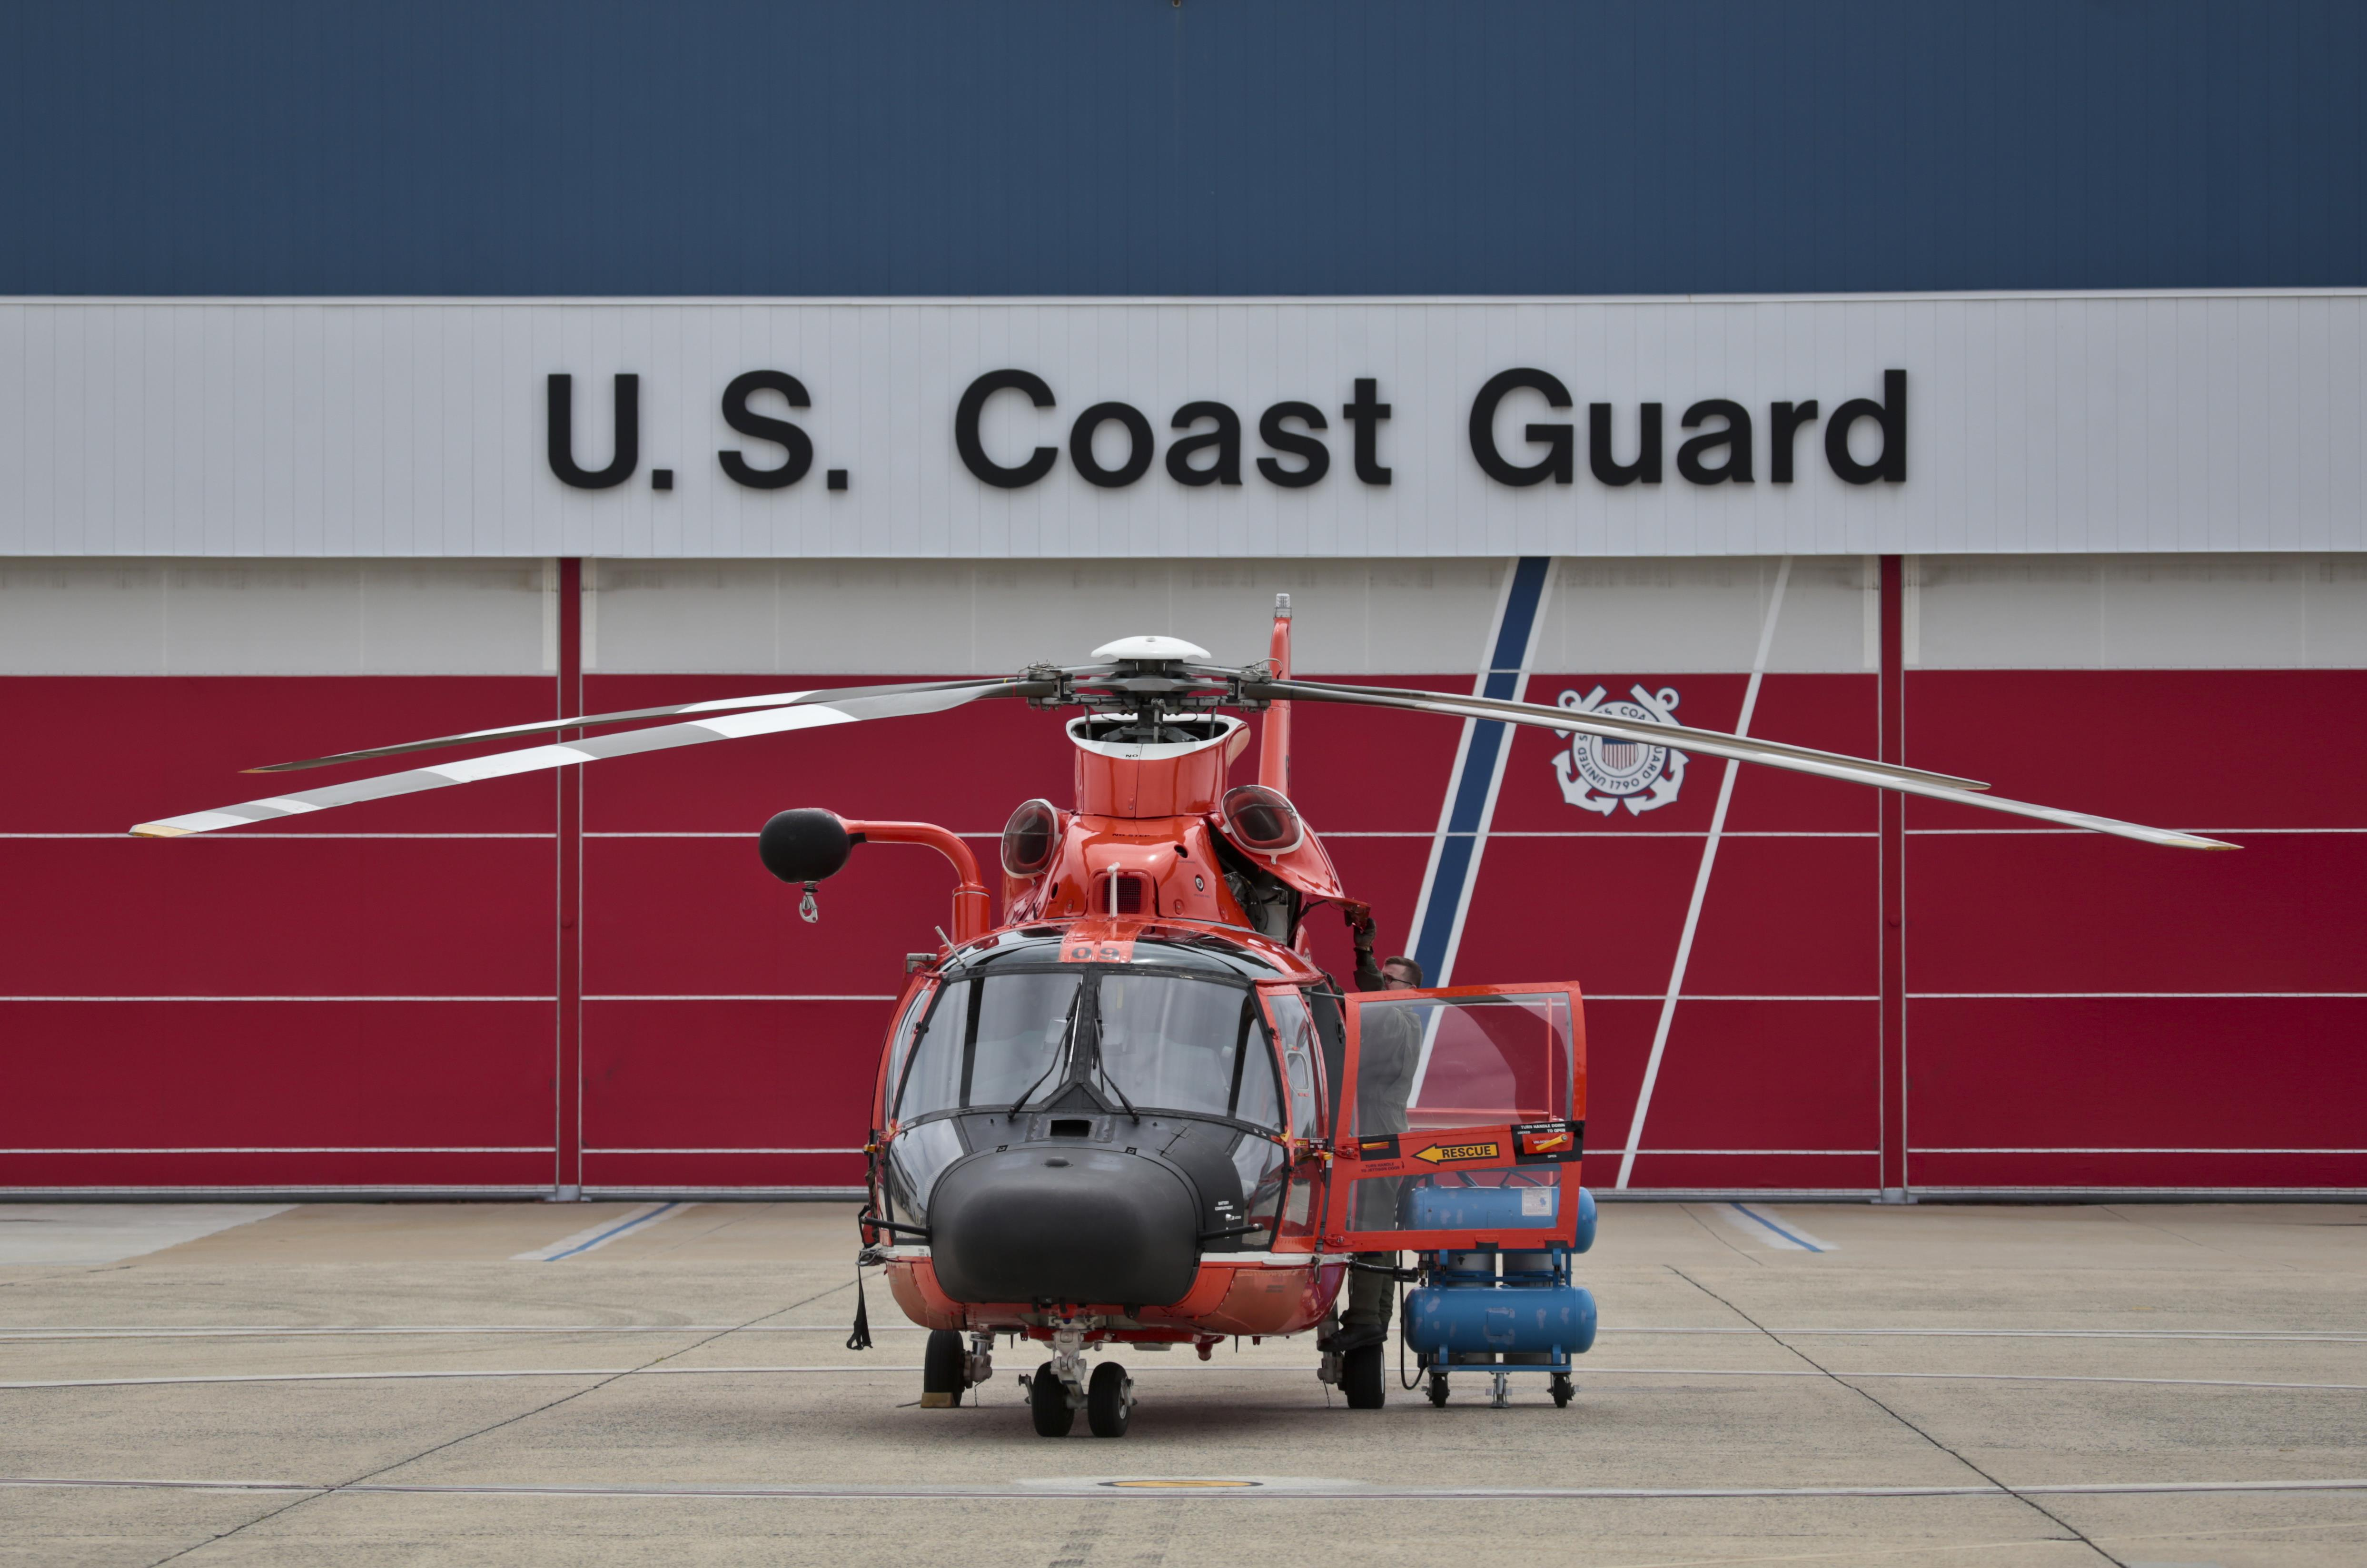 coast guard mission Coast guard missions the coast guard does not fall under the department of defense until recently, the coast guard was under the department of transportation.